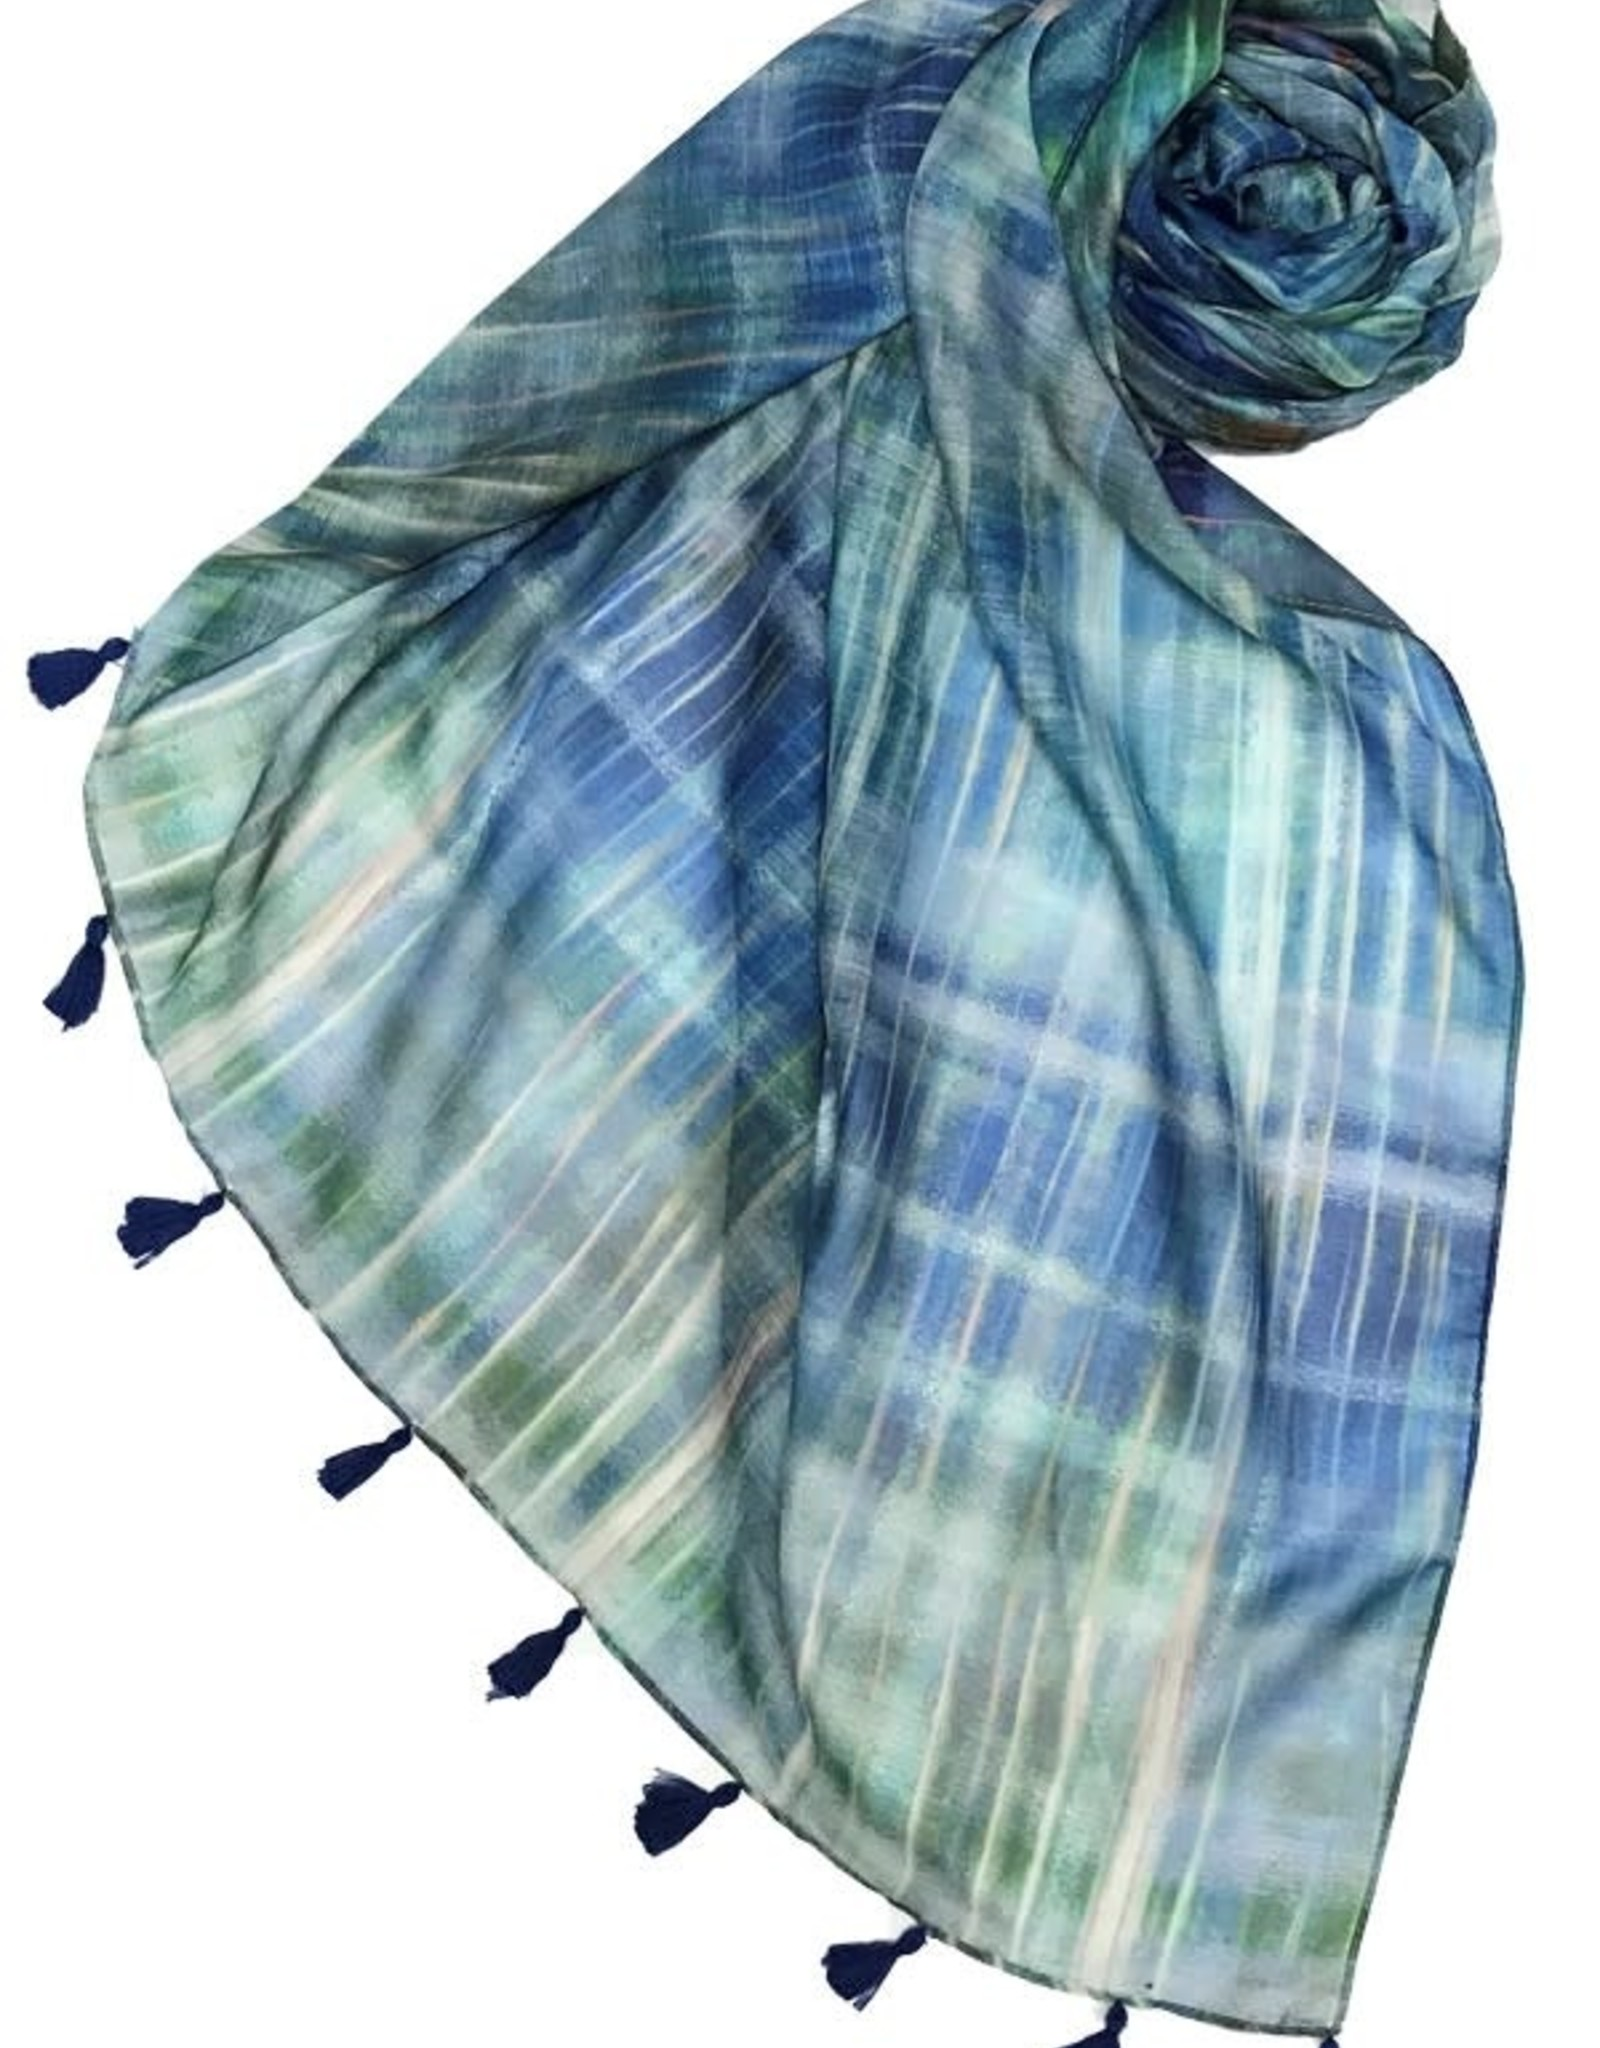 Subtle Luxury Northern Lights Scarf